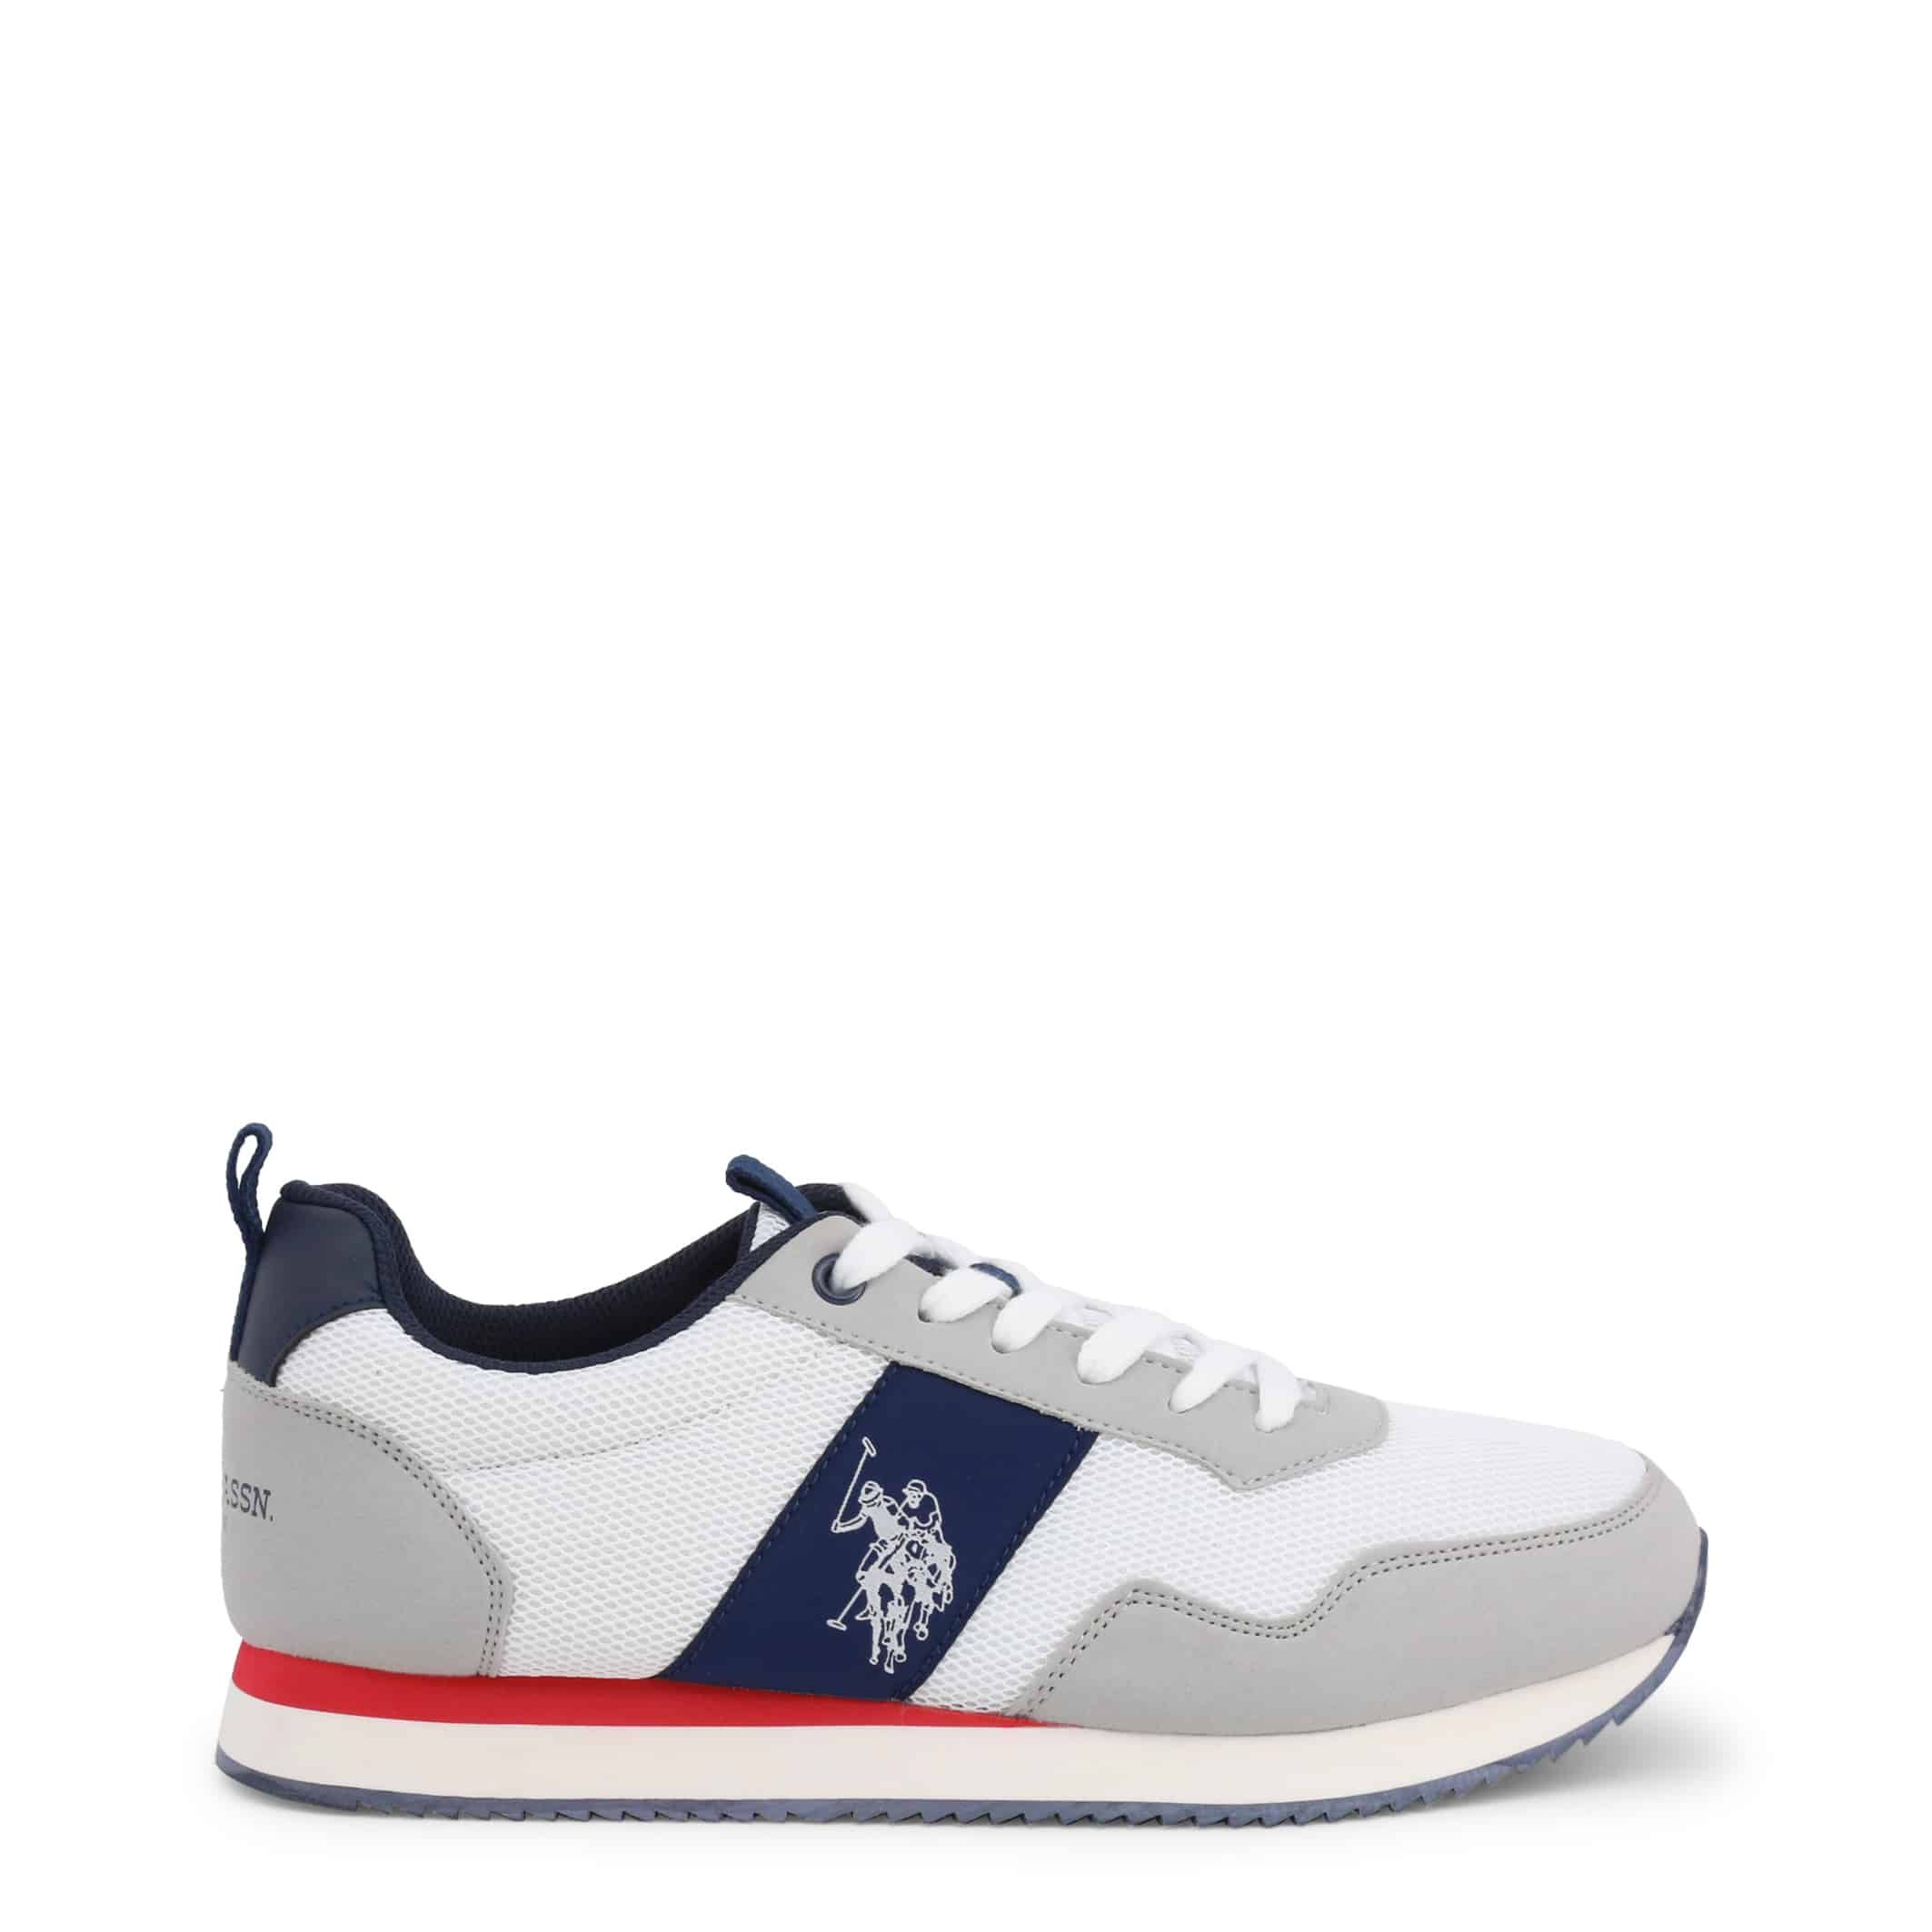 Chaussures U.S. Polo Assn. – NOBIL4250S0_MH1